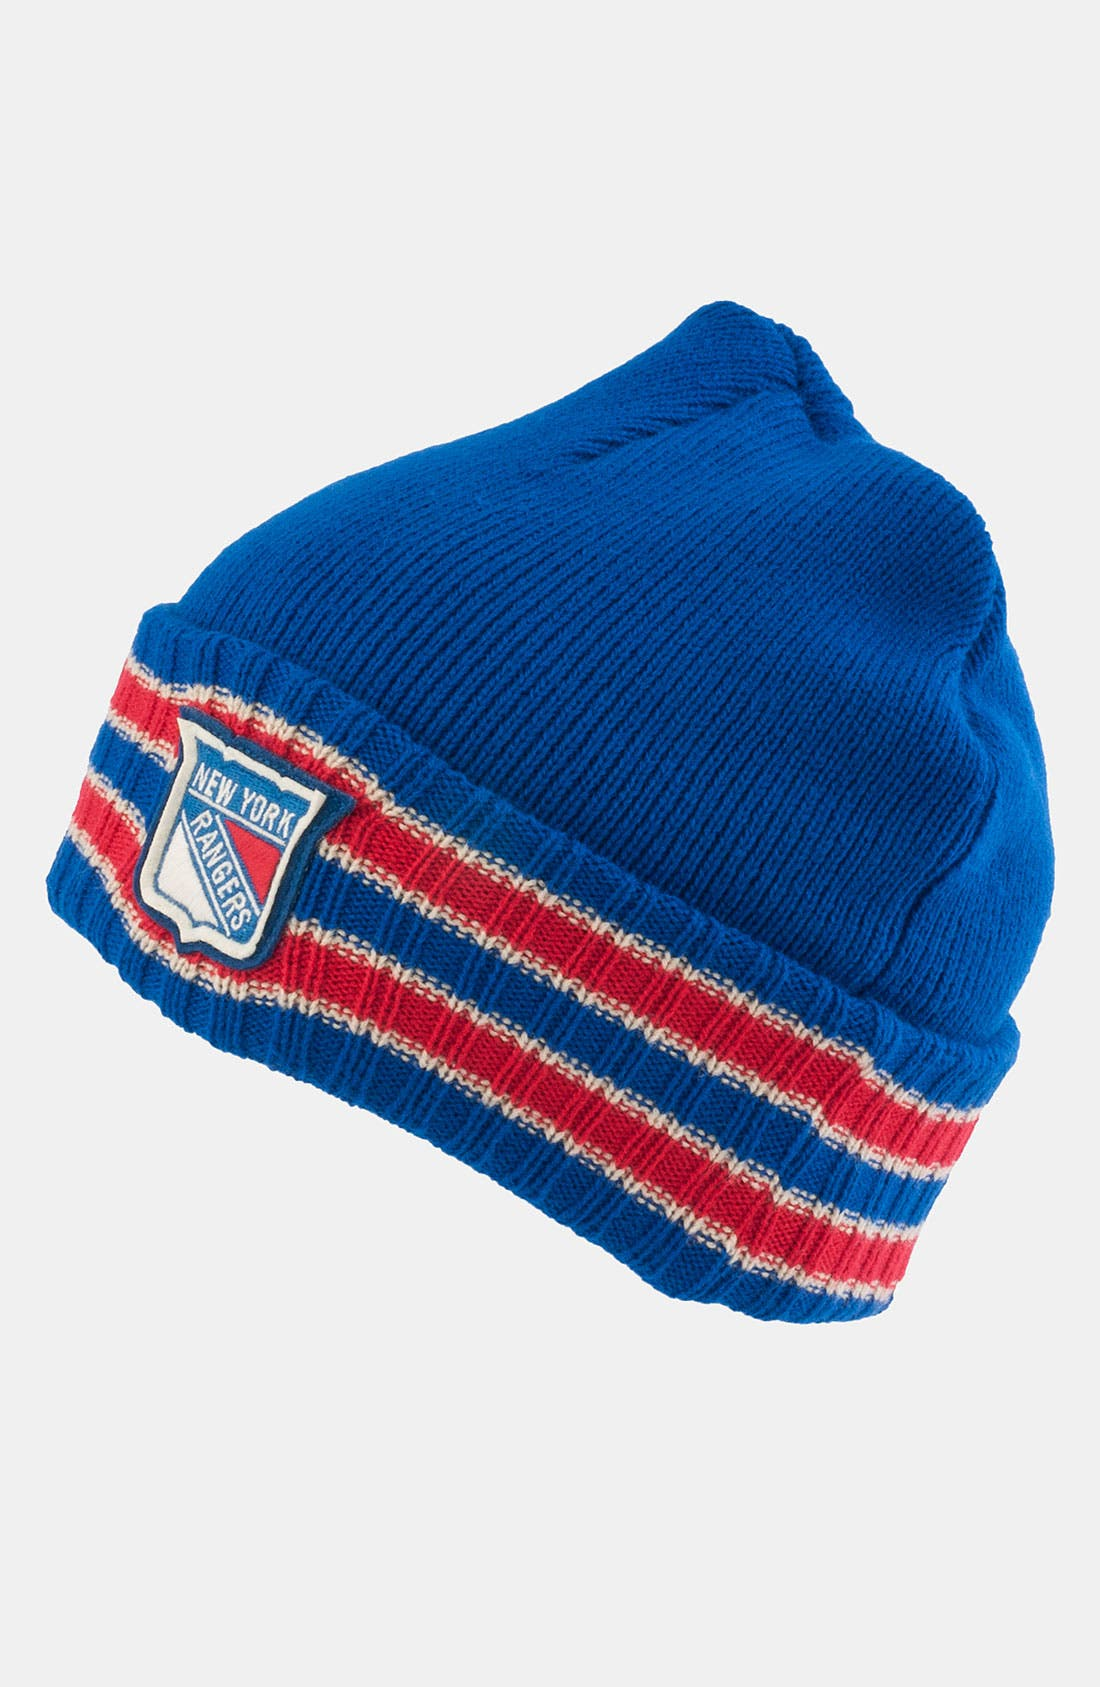 Alternate Image 1 Selected - American Needle 'New York Rangers - Slash' Knit Hat